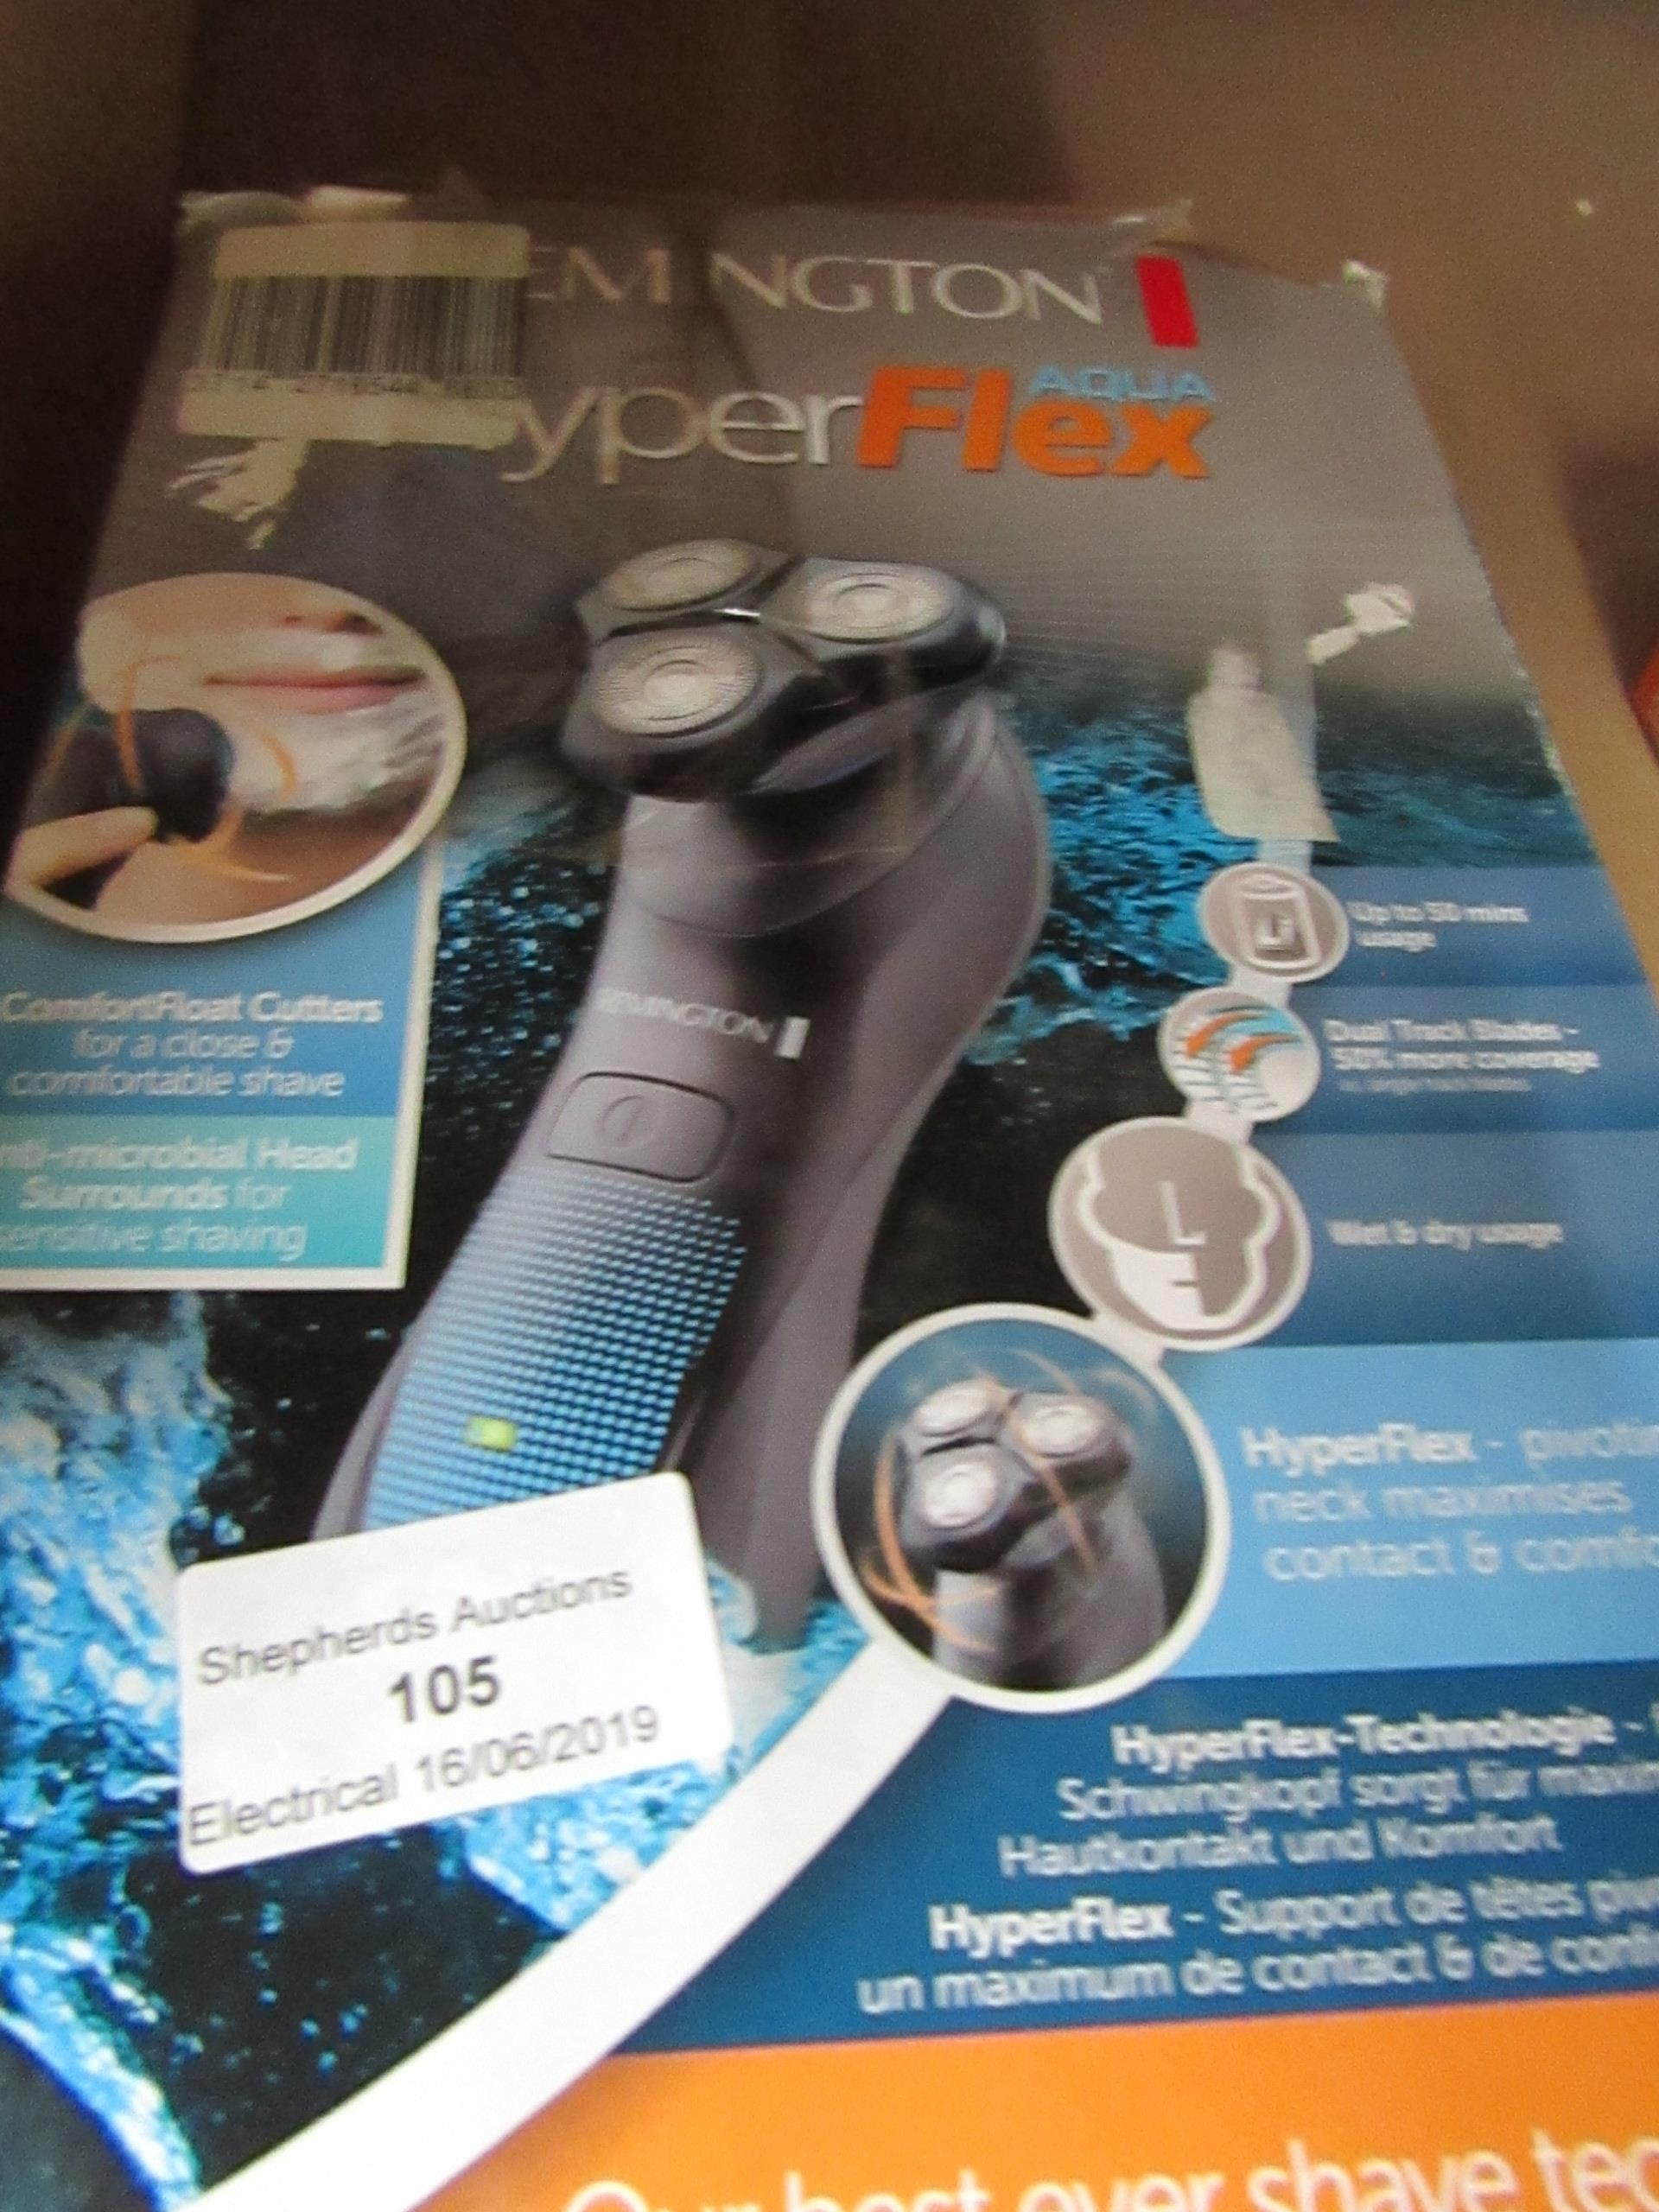 Lot 105 - Remington HyperFlex beard trimmer, untested and boxed.